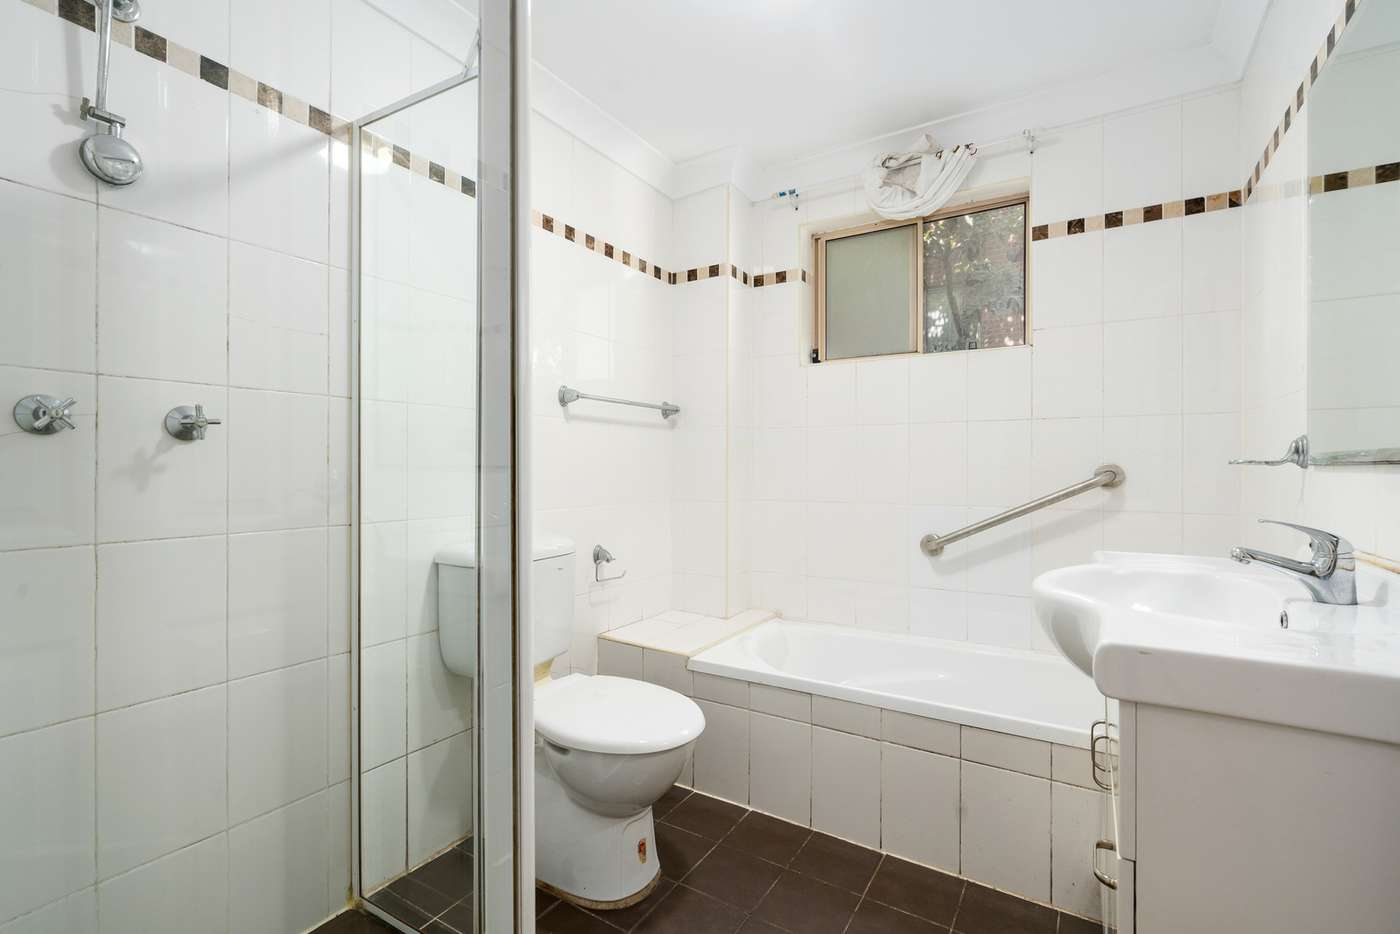 Sixth view of Homely apartment listing, 2/6-8 Hargrave Road, Auburn NSW 2144